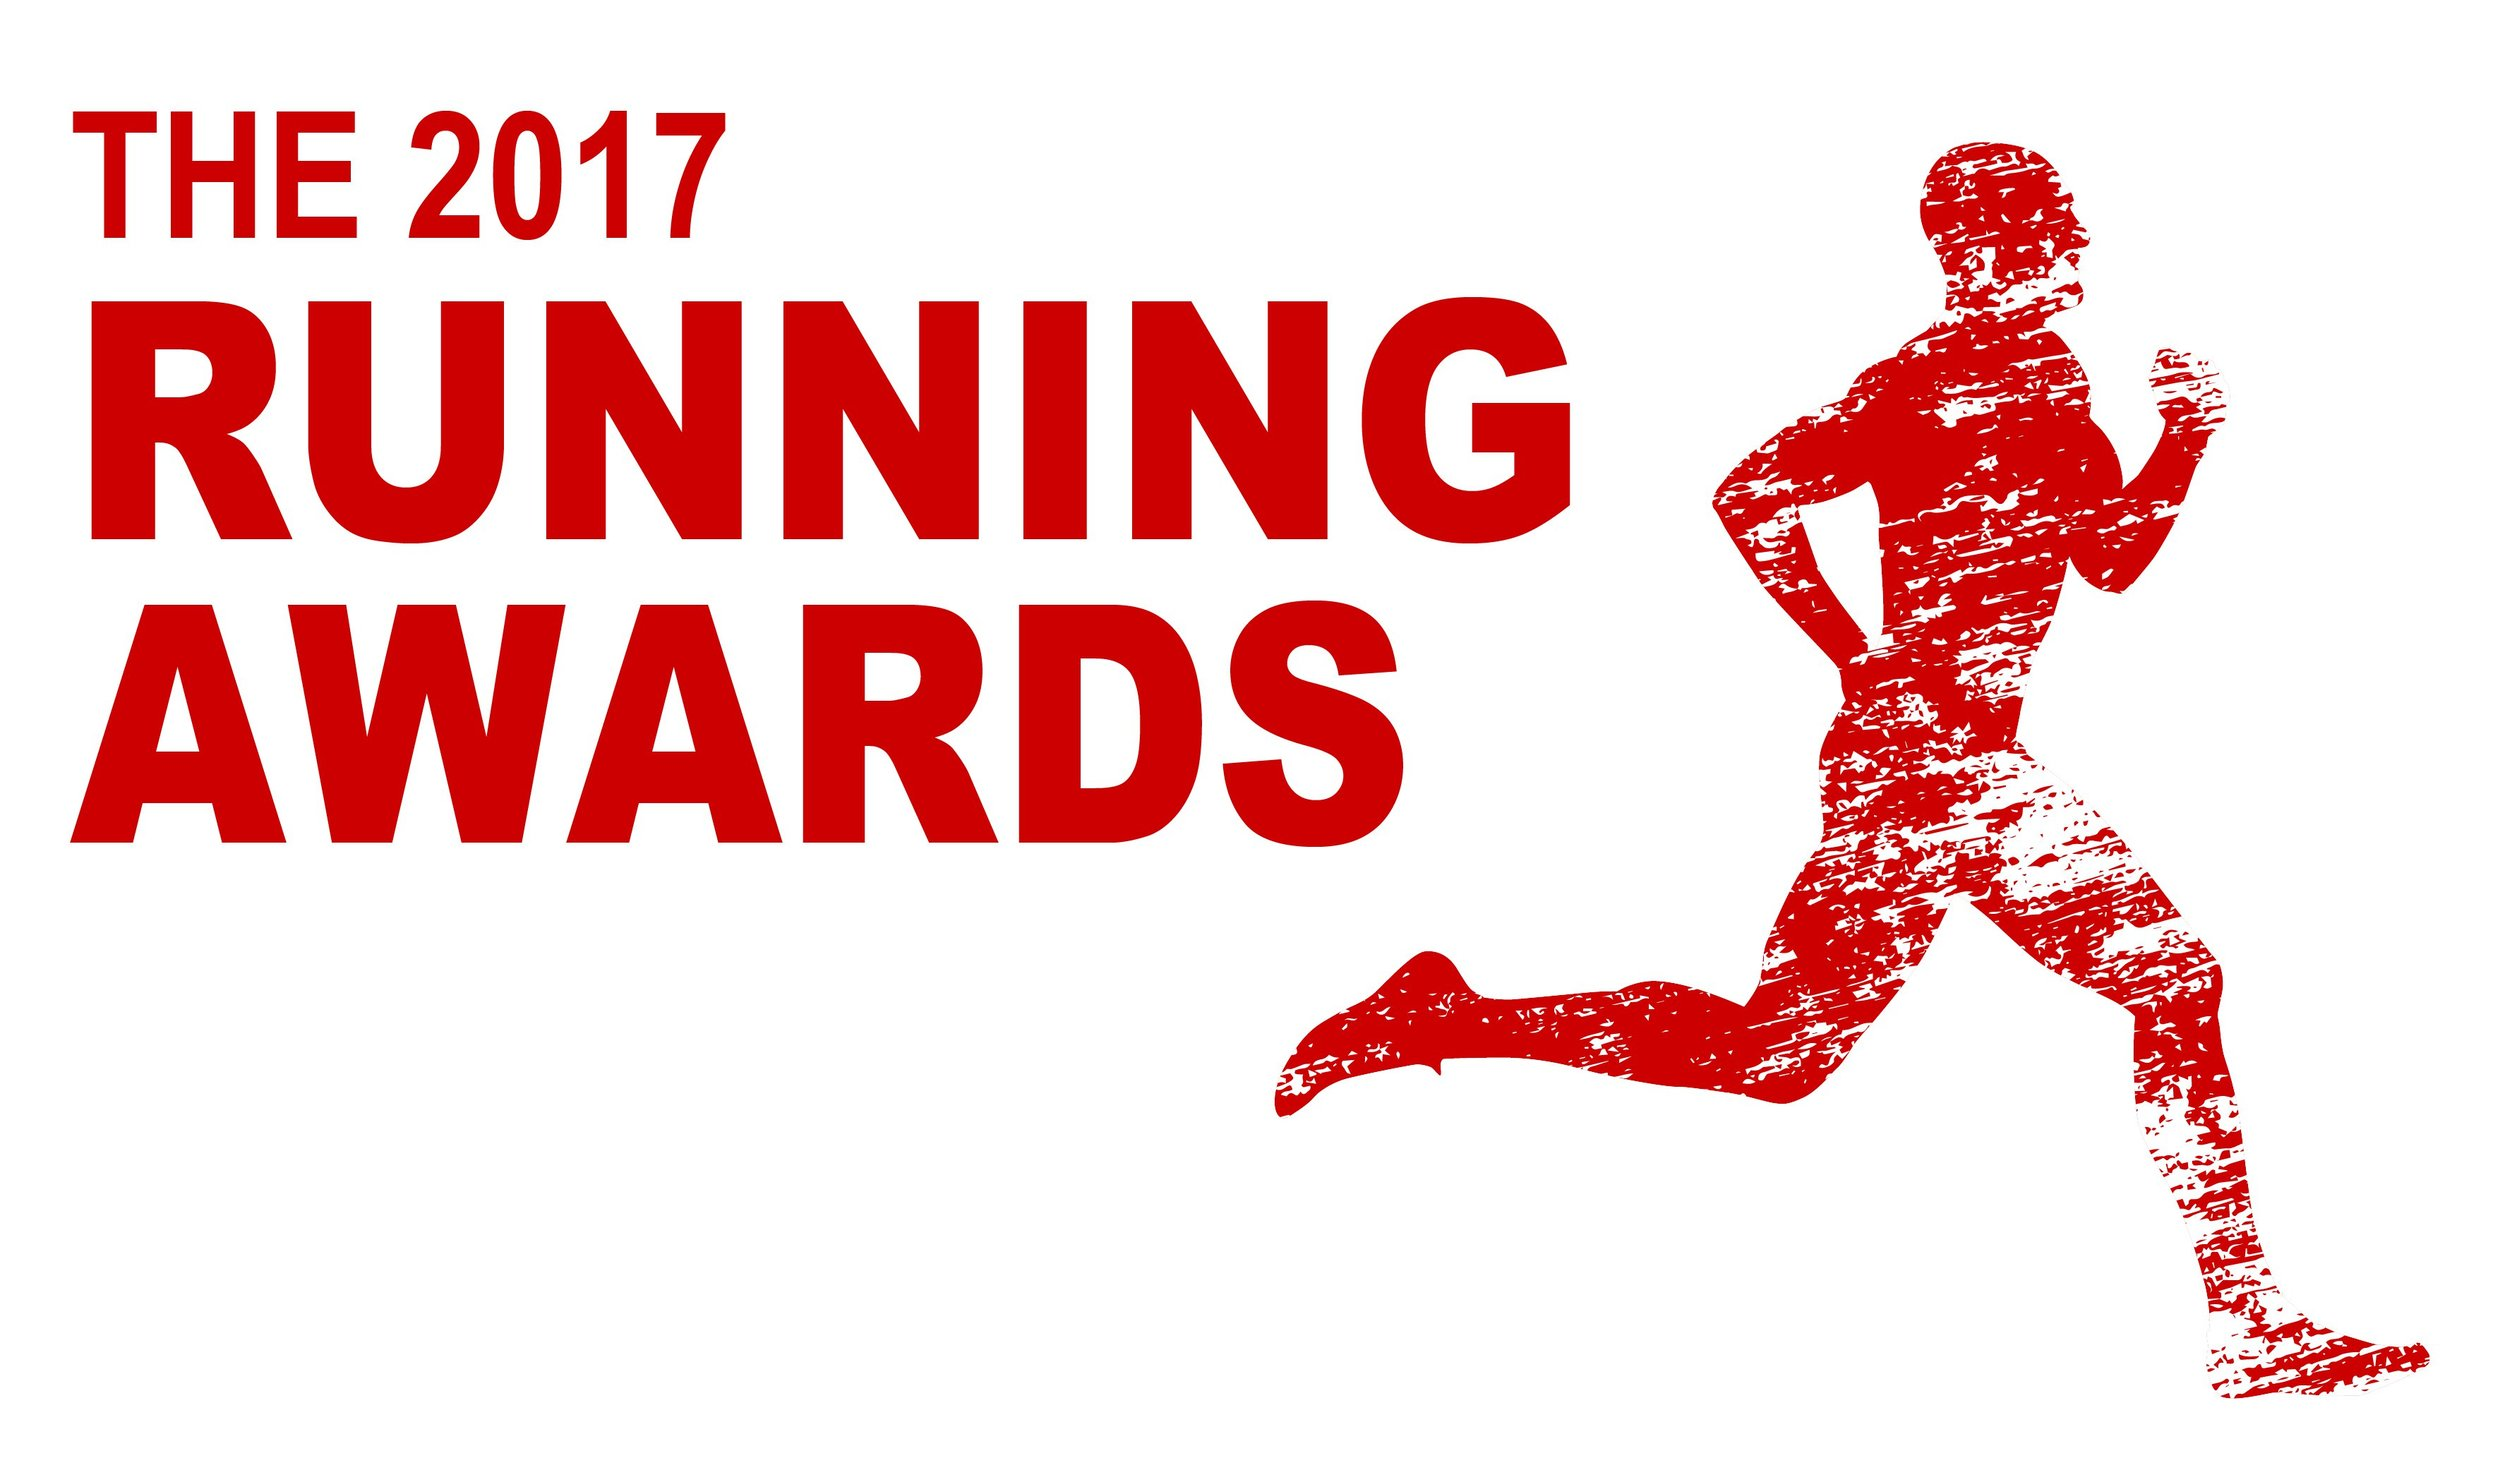 THE_2017_RUNNING_-AWARDS_RED_TRA.jpg